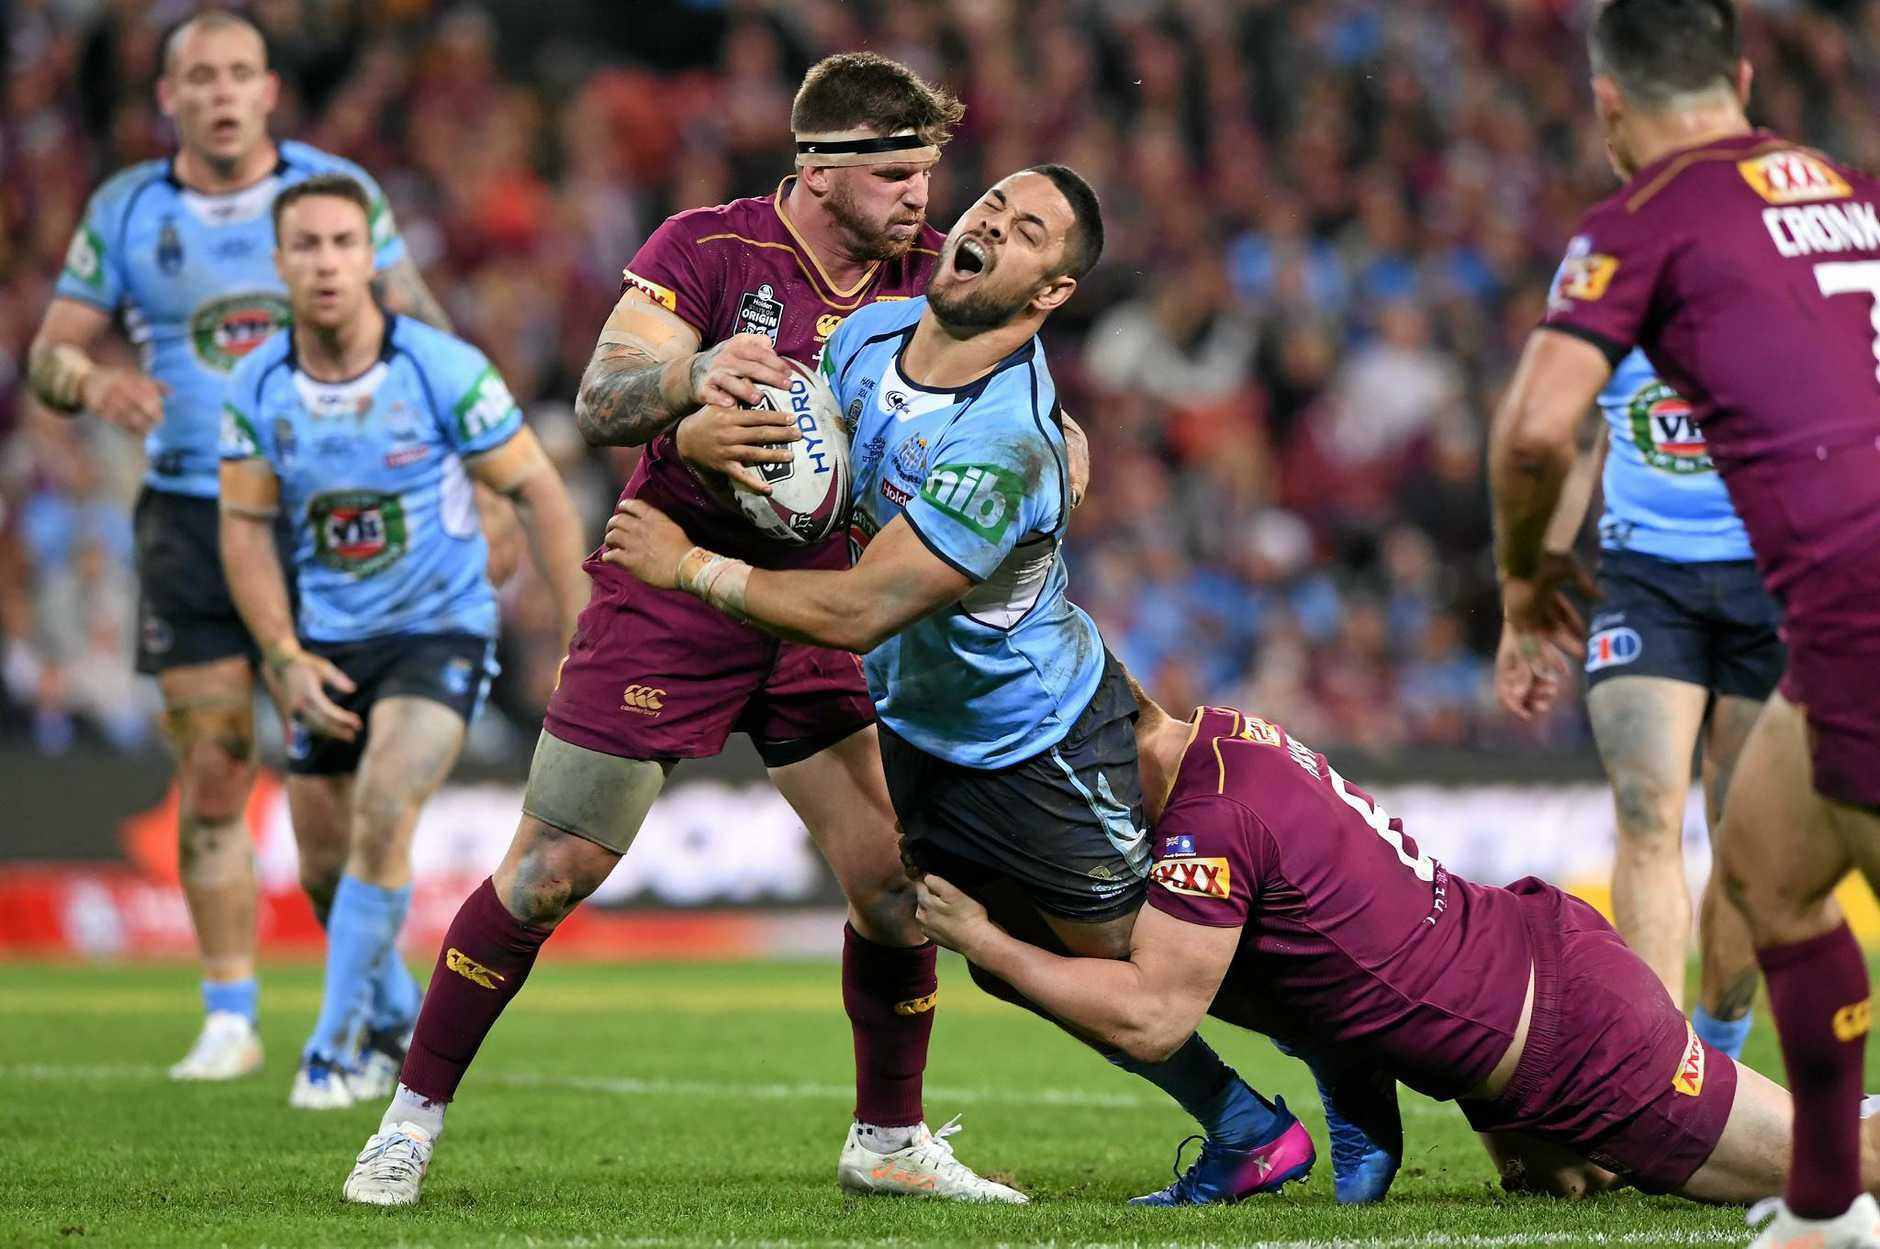 Jarryd Hayne of the Blues is stopped by the Maroons defence.